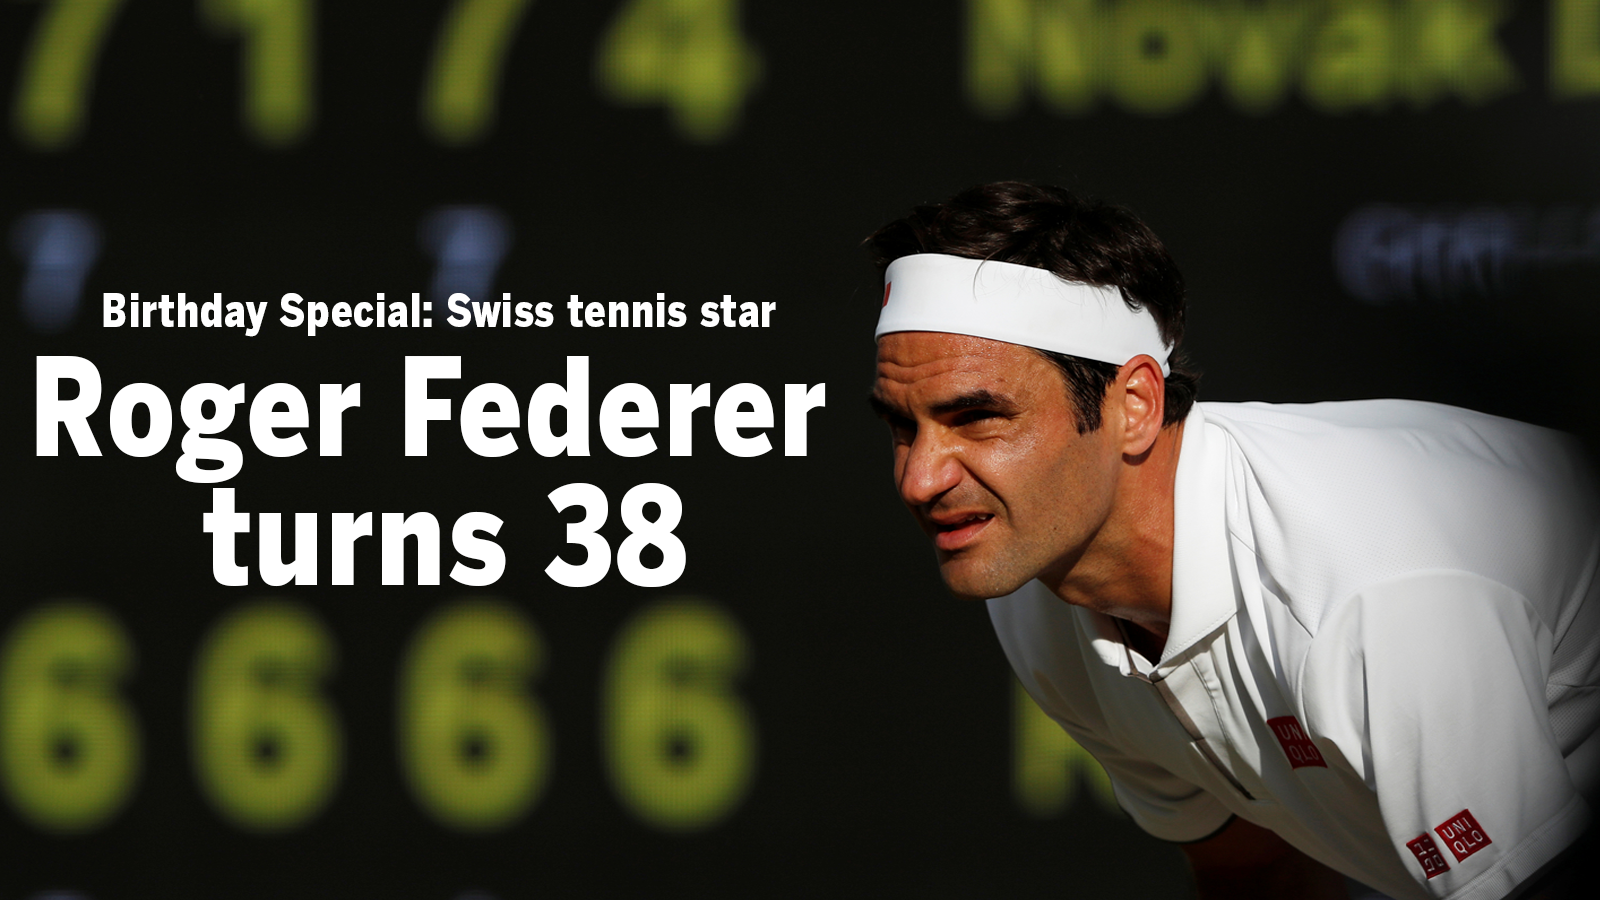 birthday-special-swiss-tennis-star-roger-federer-turns-38